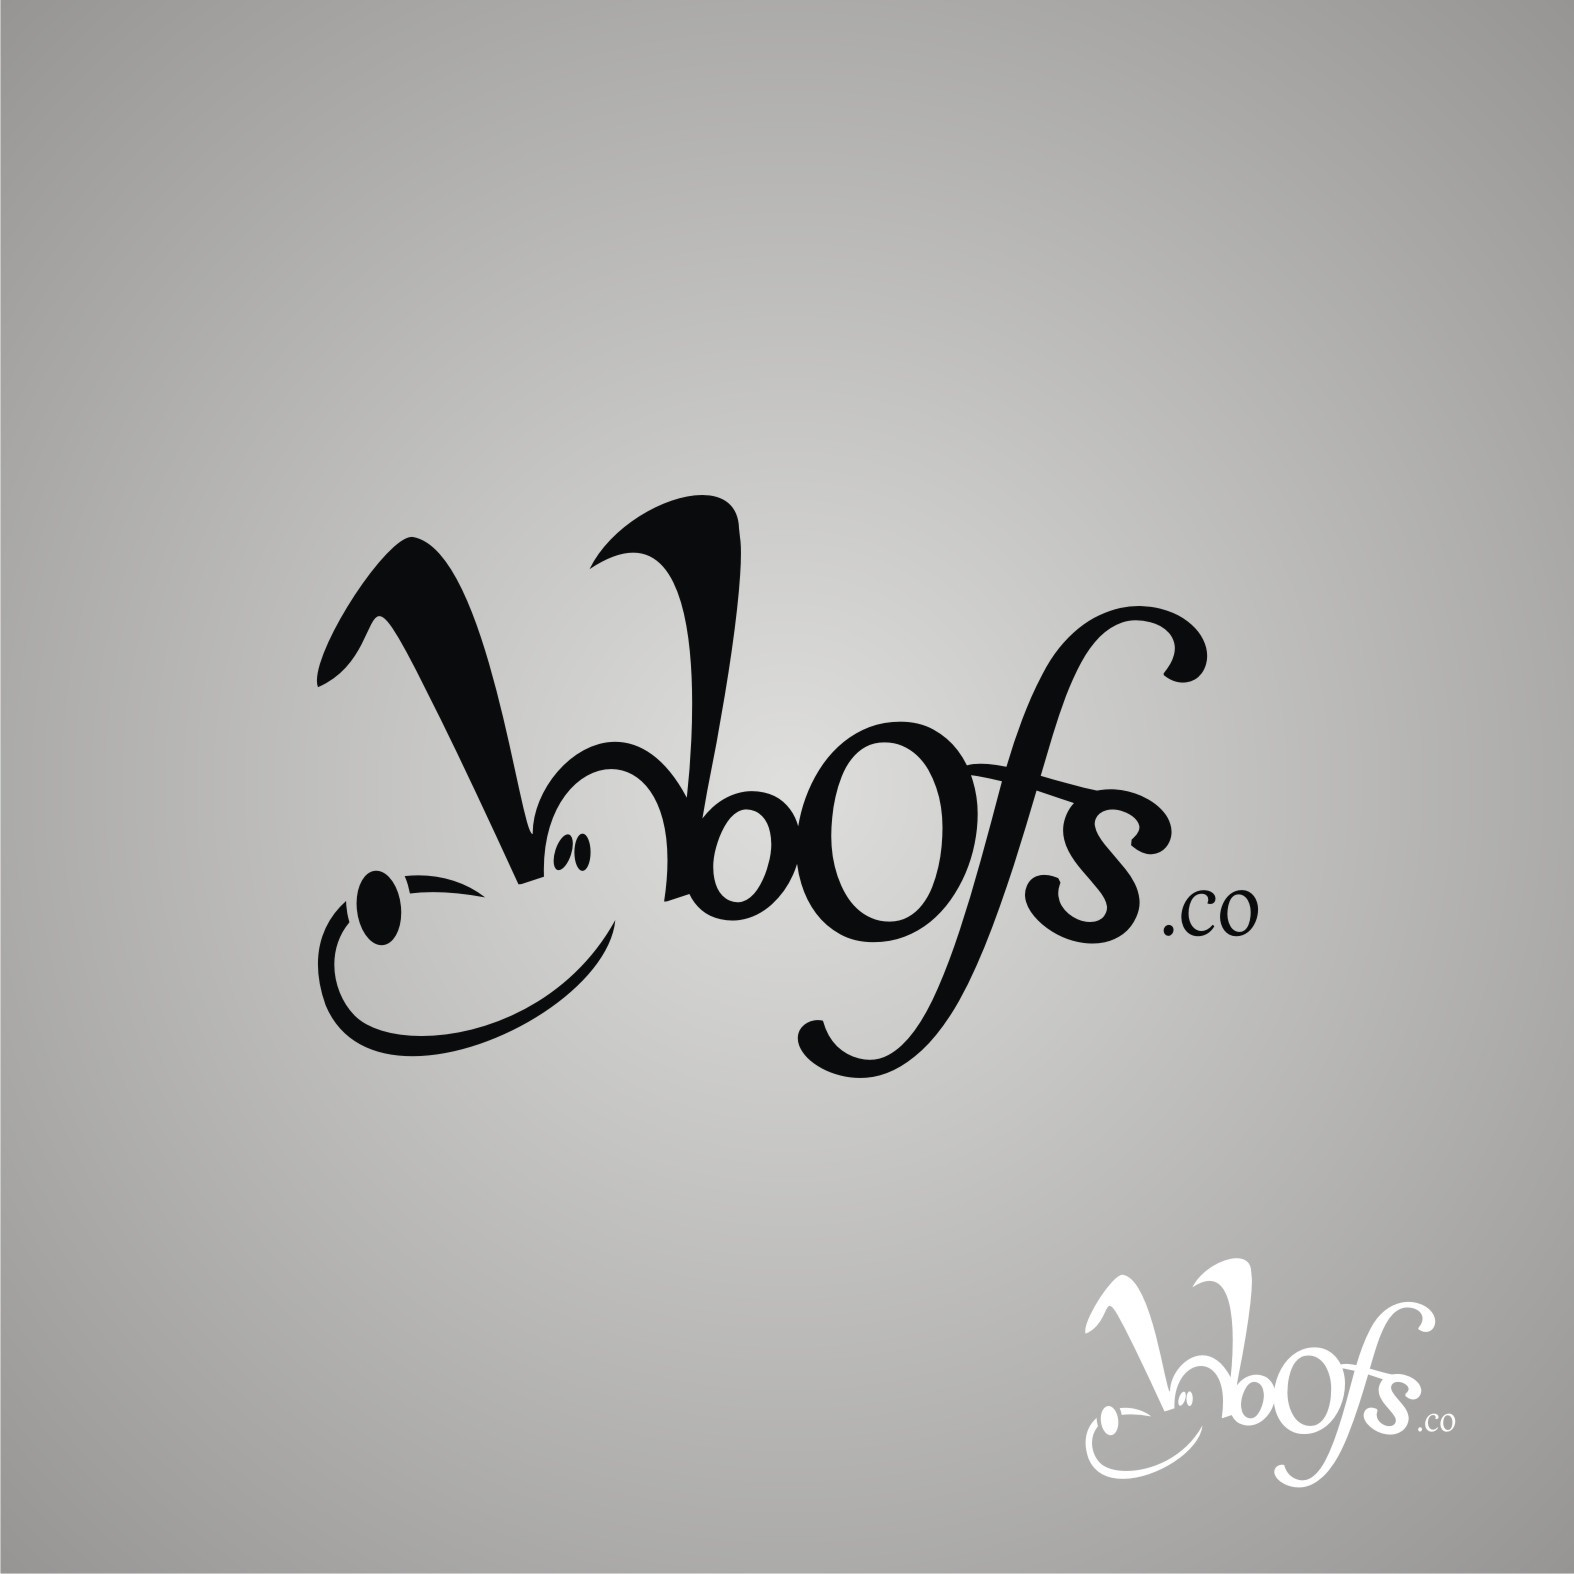 New logo wanted for Woofs.co